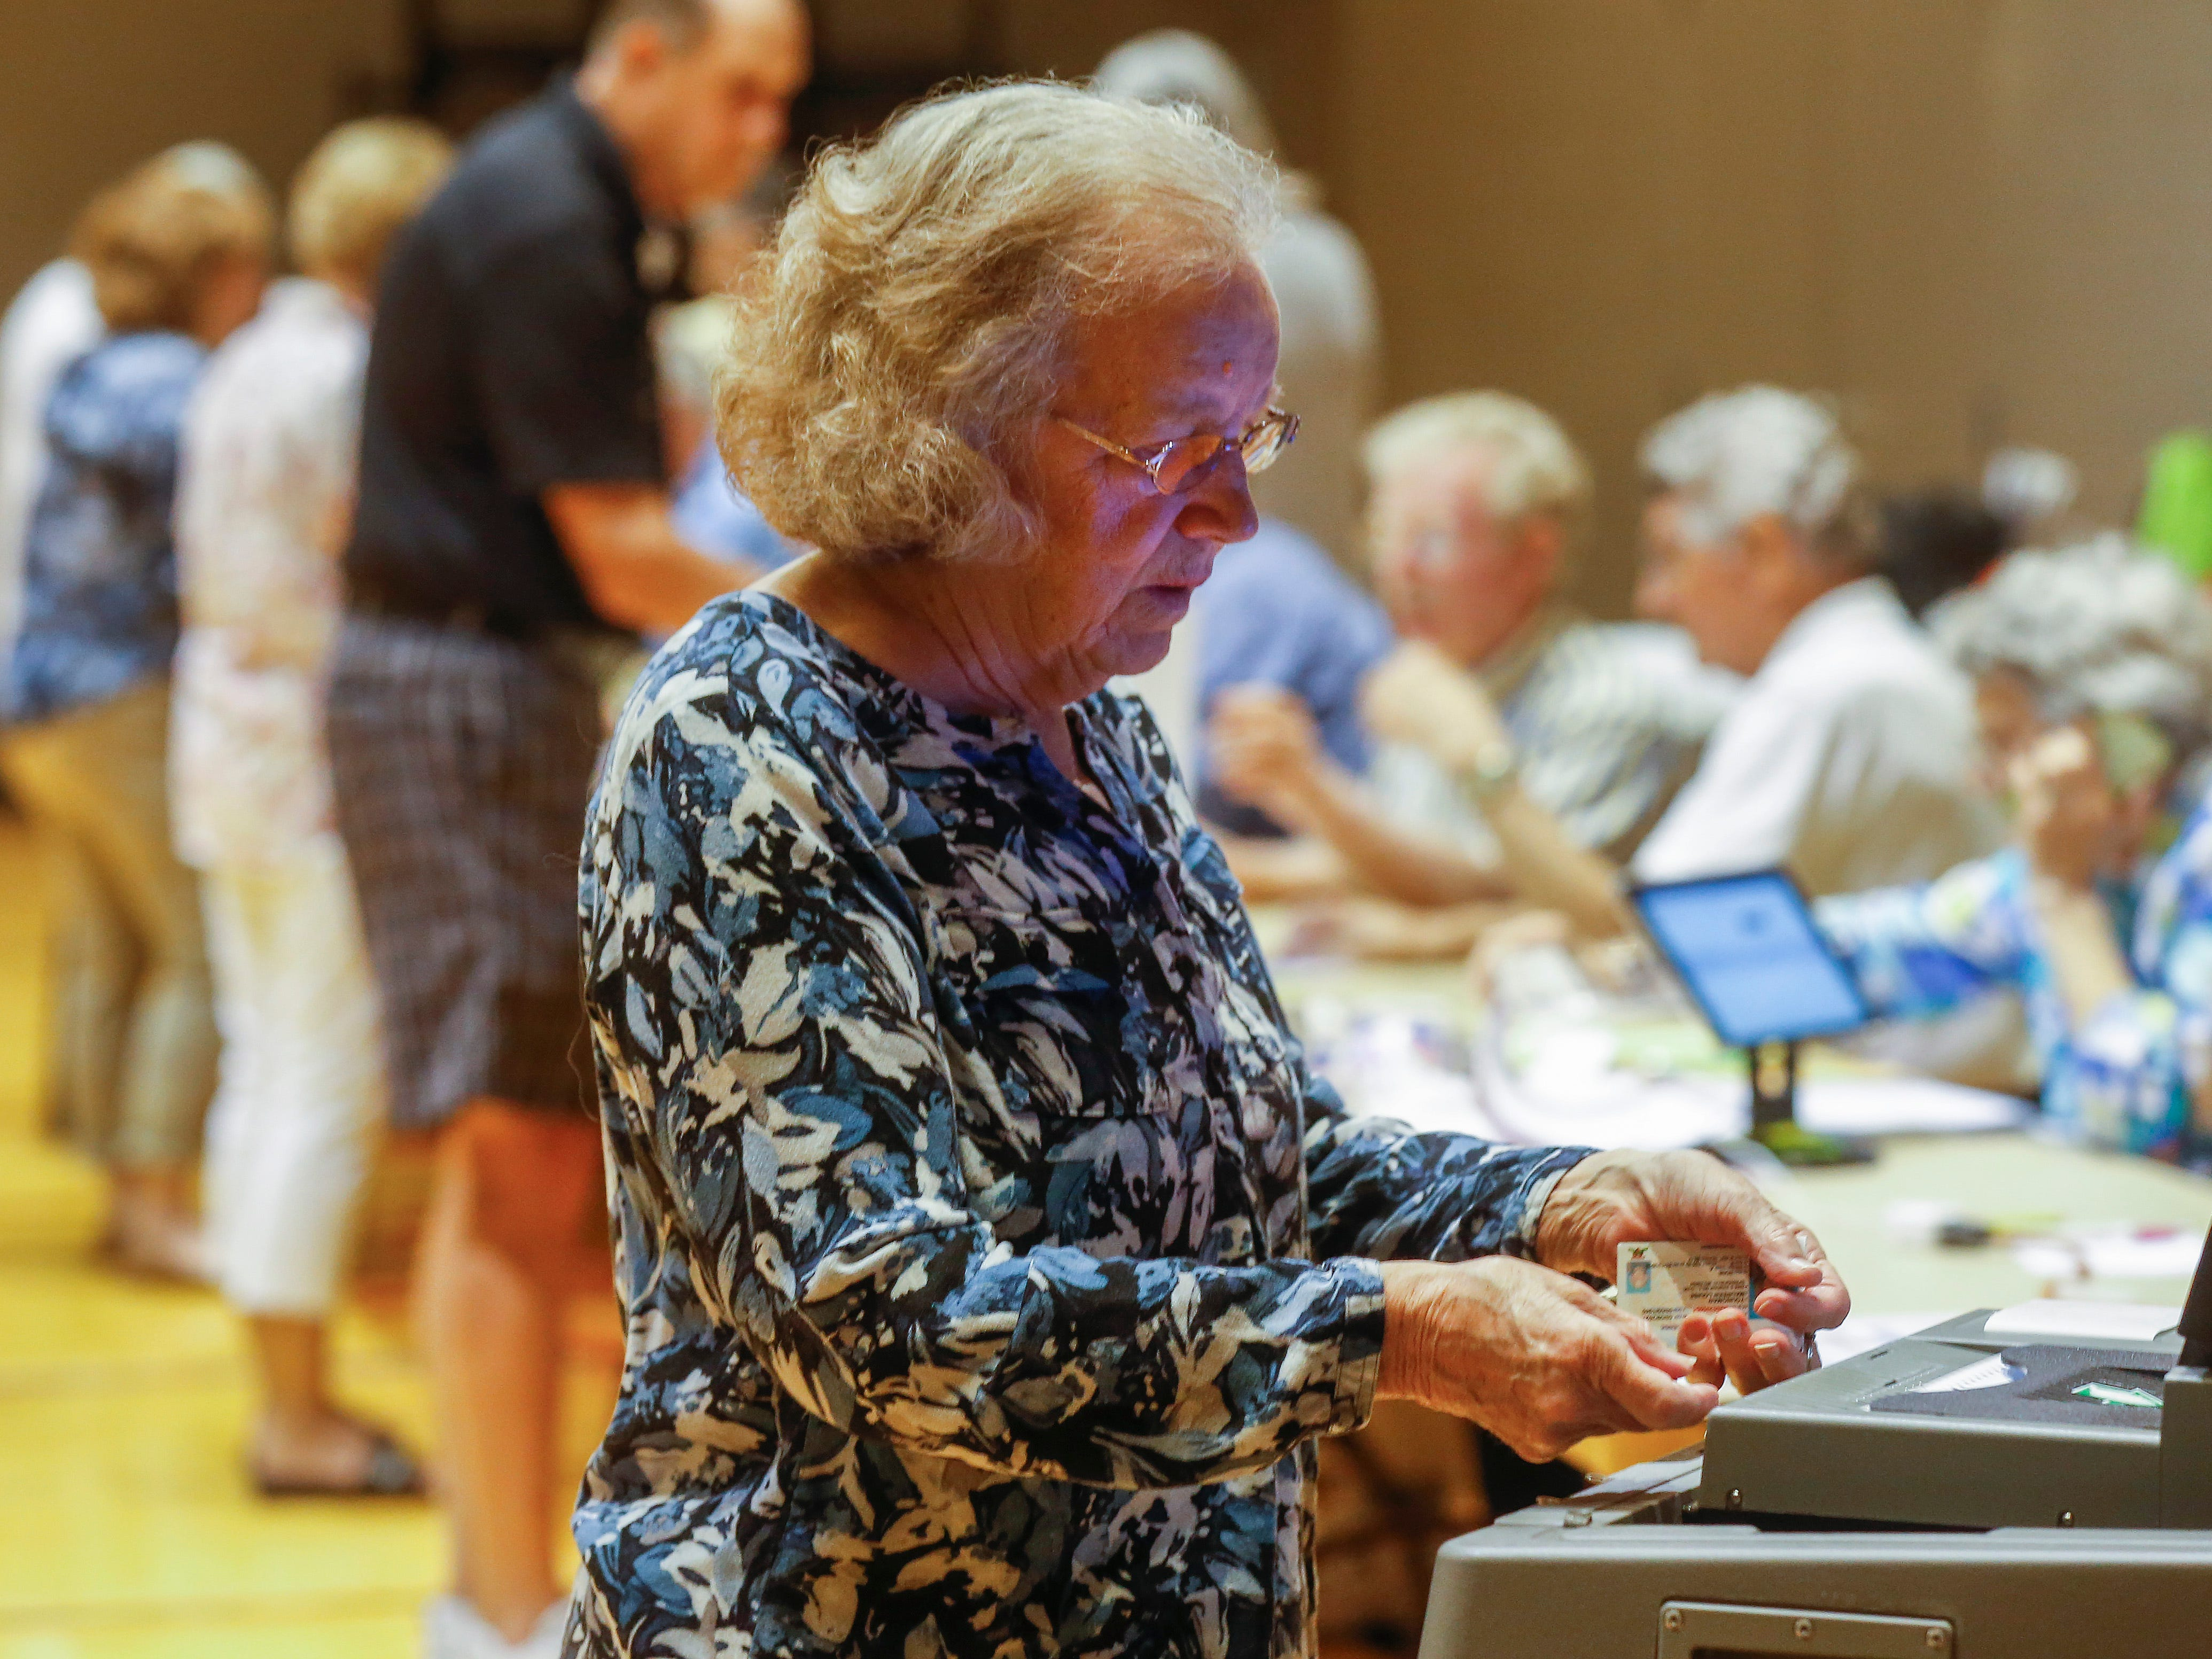 Maureen Youngman casts her ballot at the Second Baptist Church on Tuesday, Aug. 7, 2018.